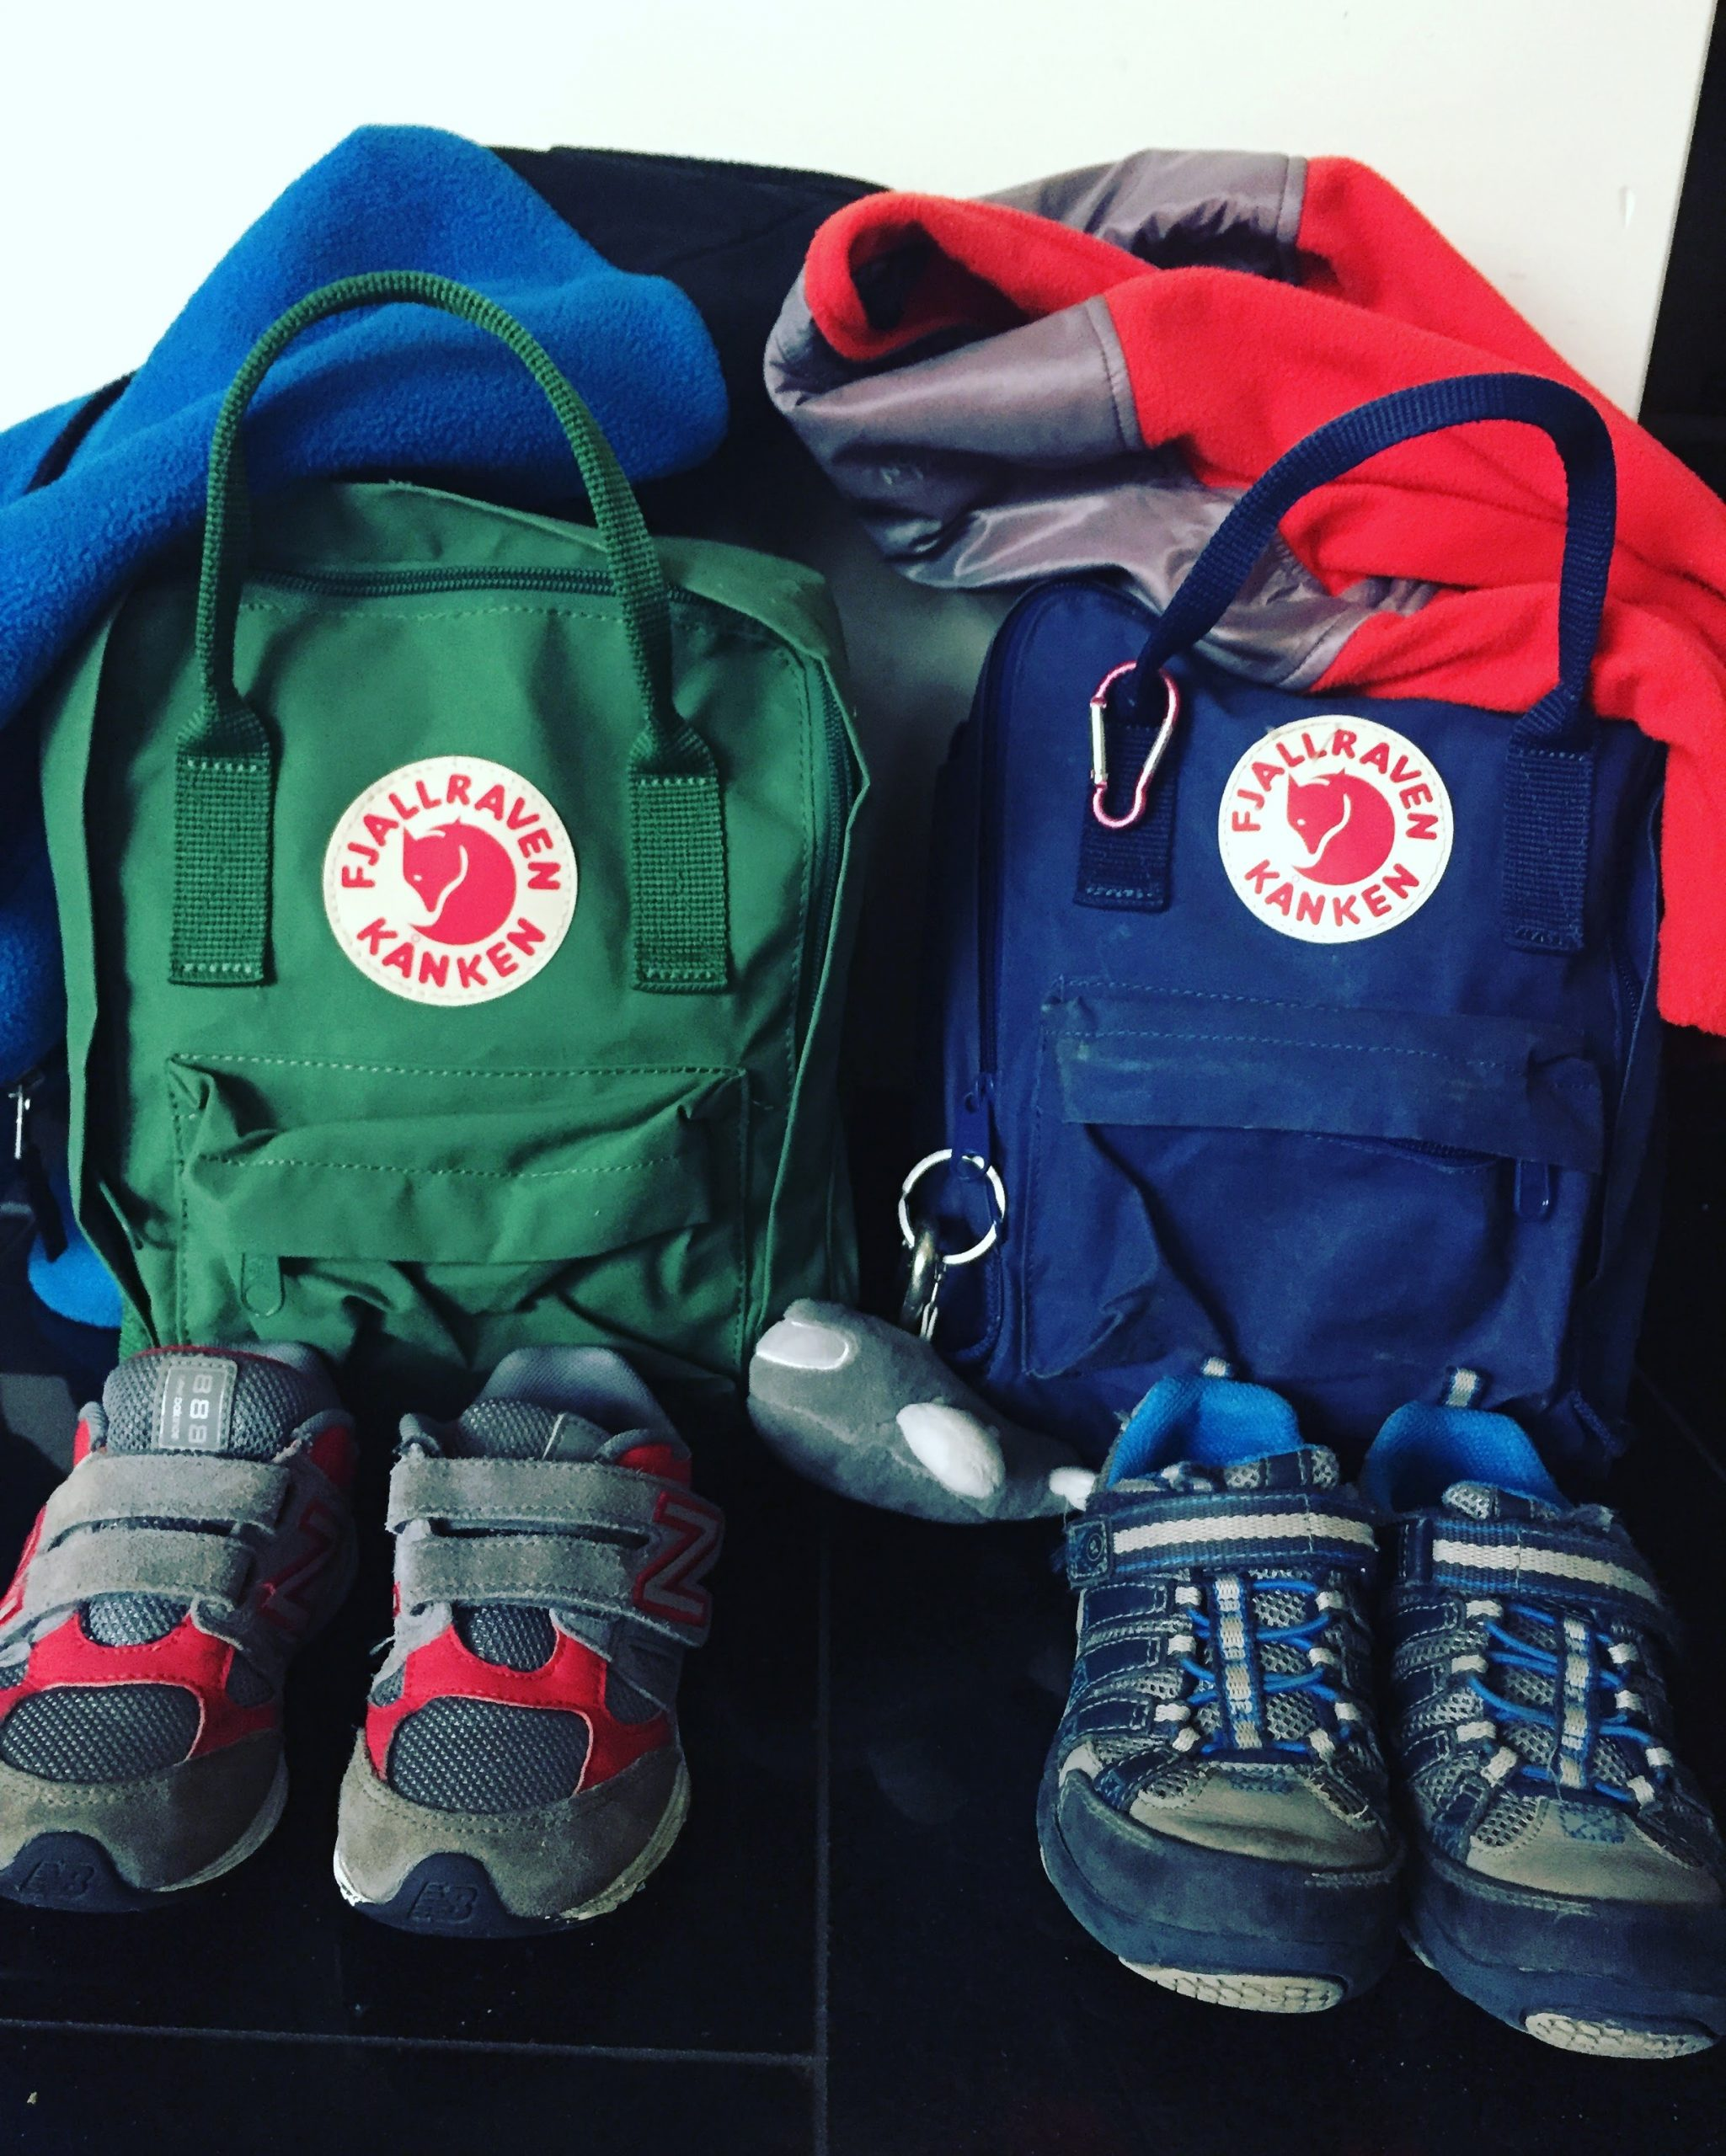 Fjallraven Mini is one of our recommended toddler backpacks